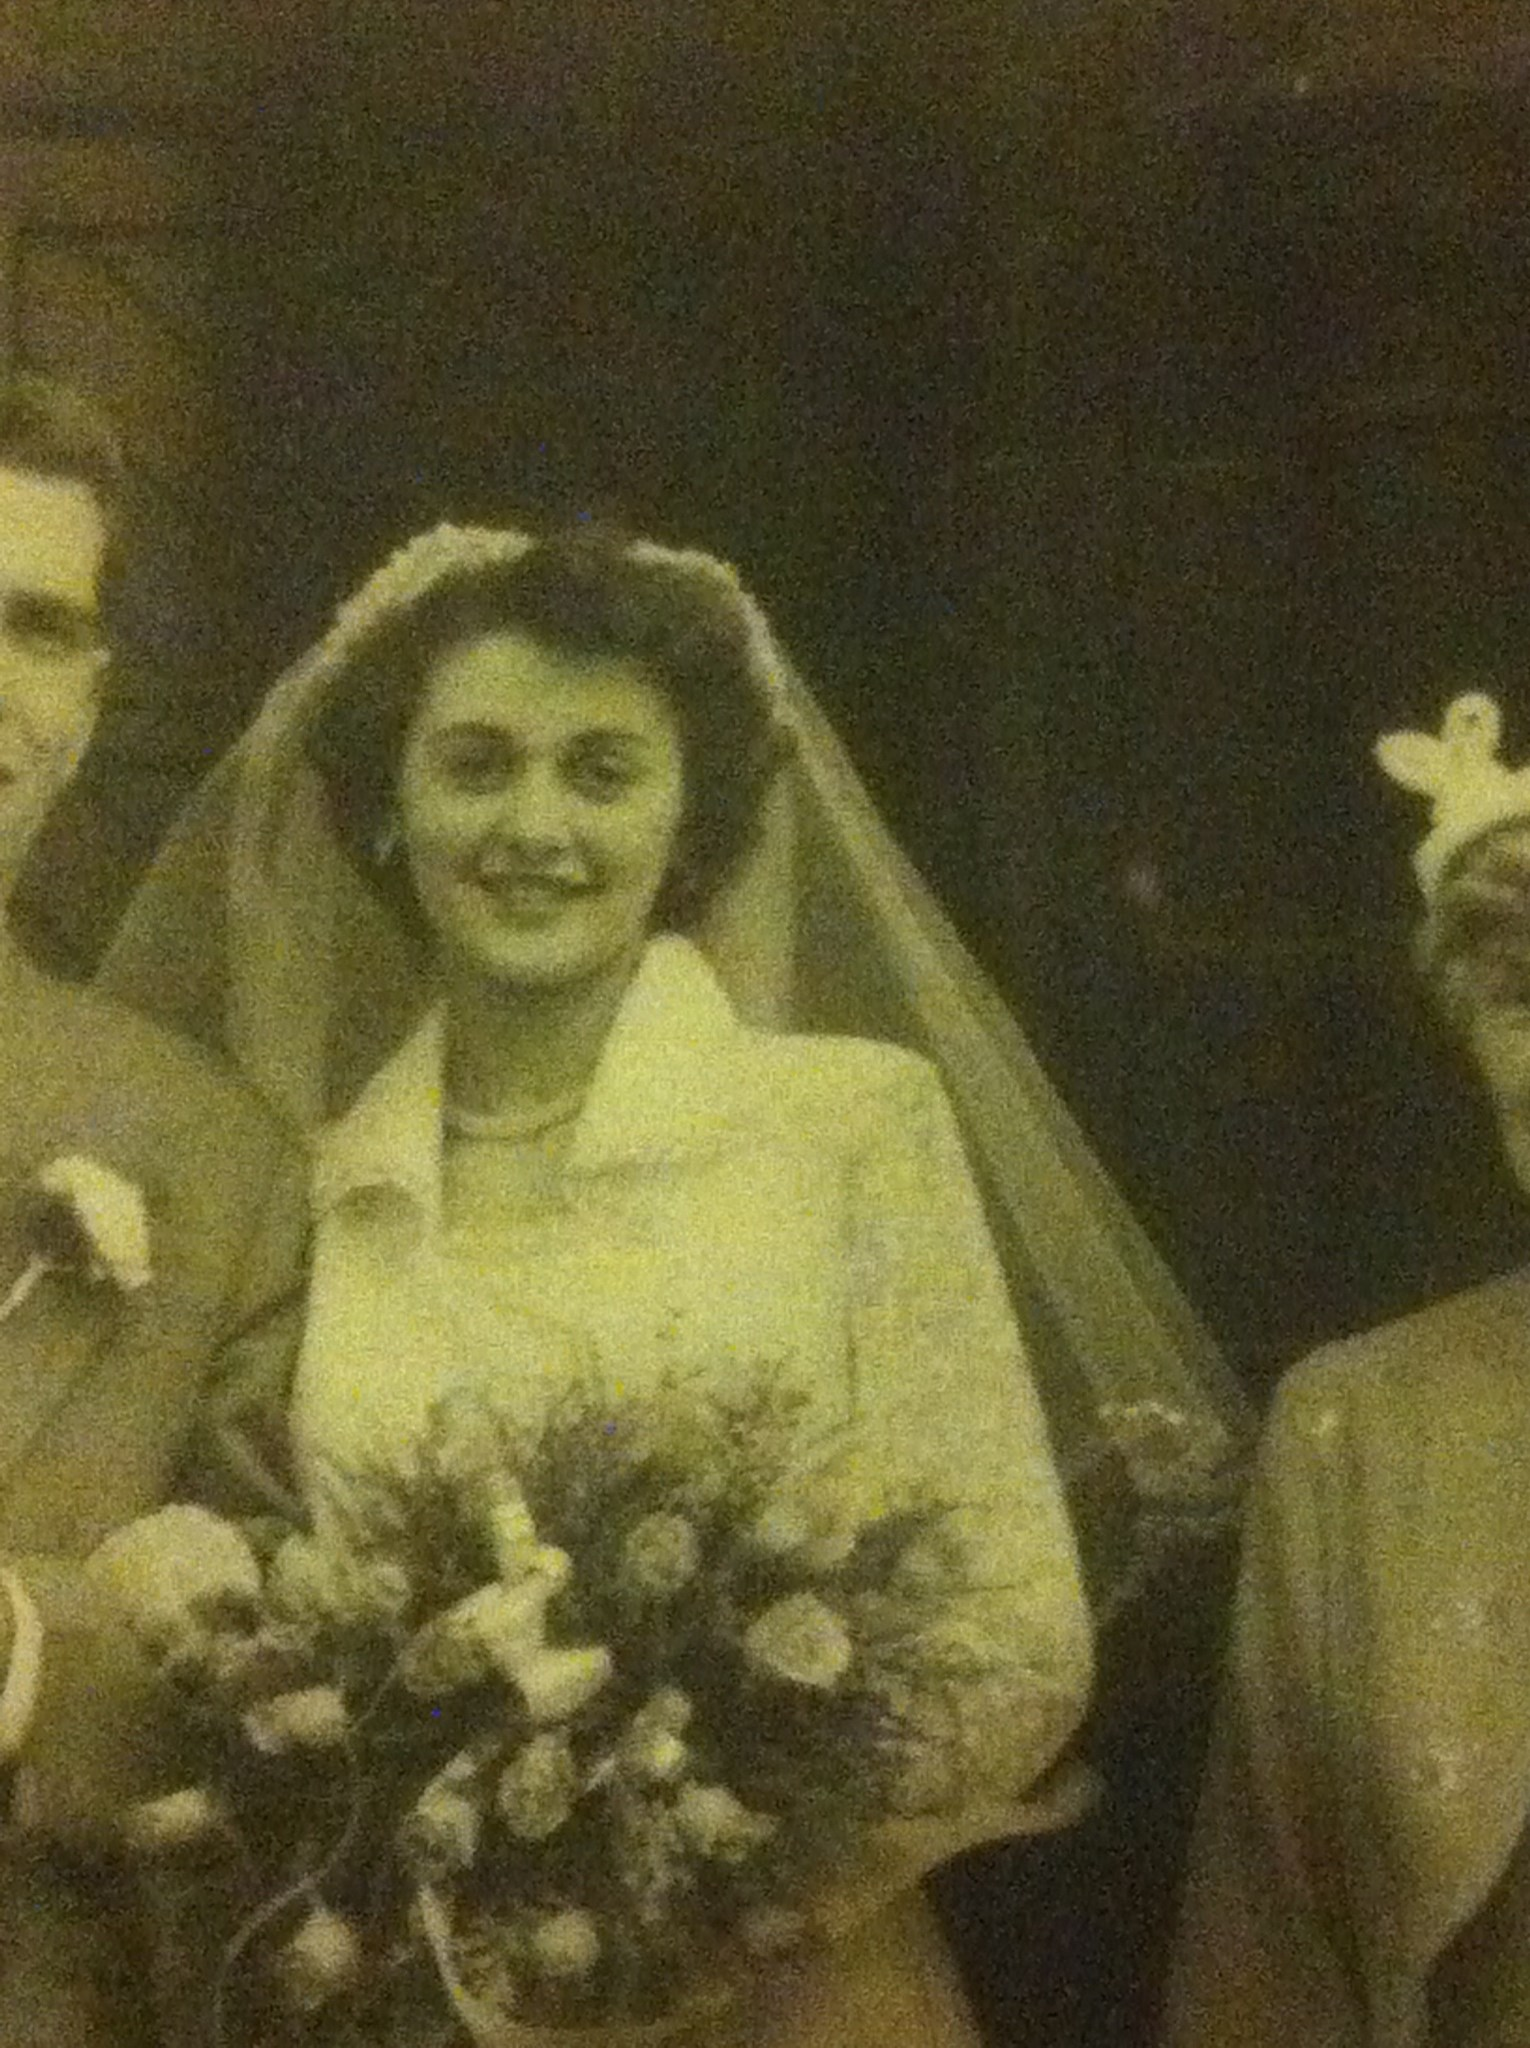 Joyce's wedding day